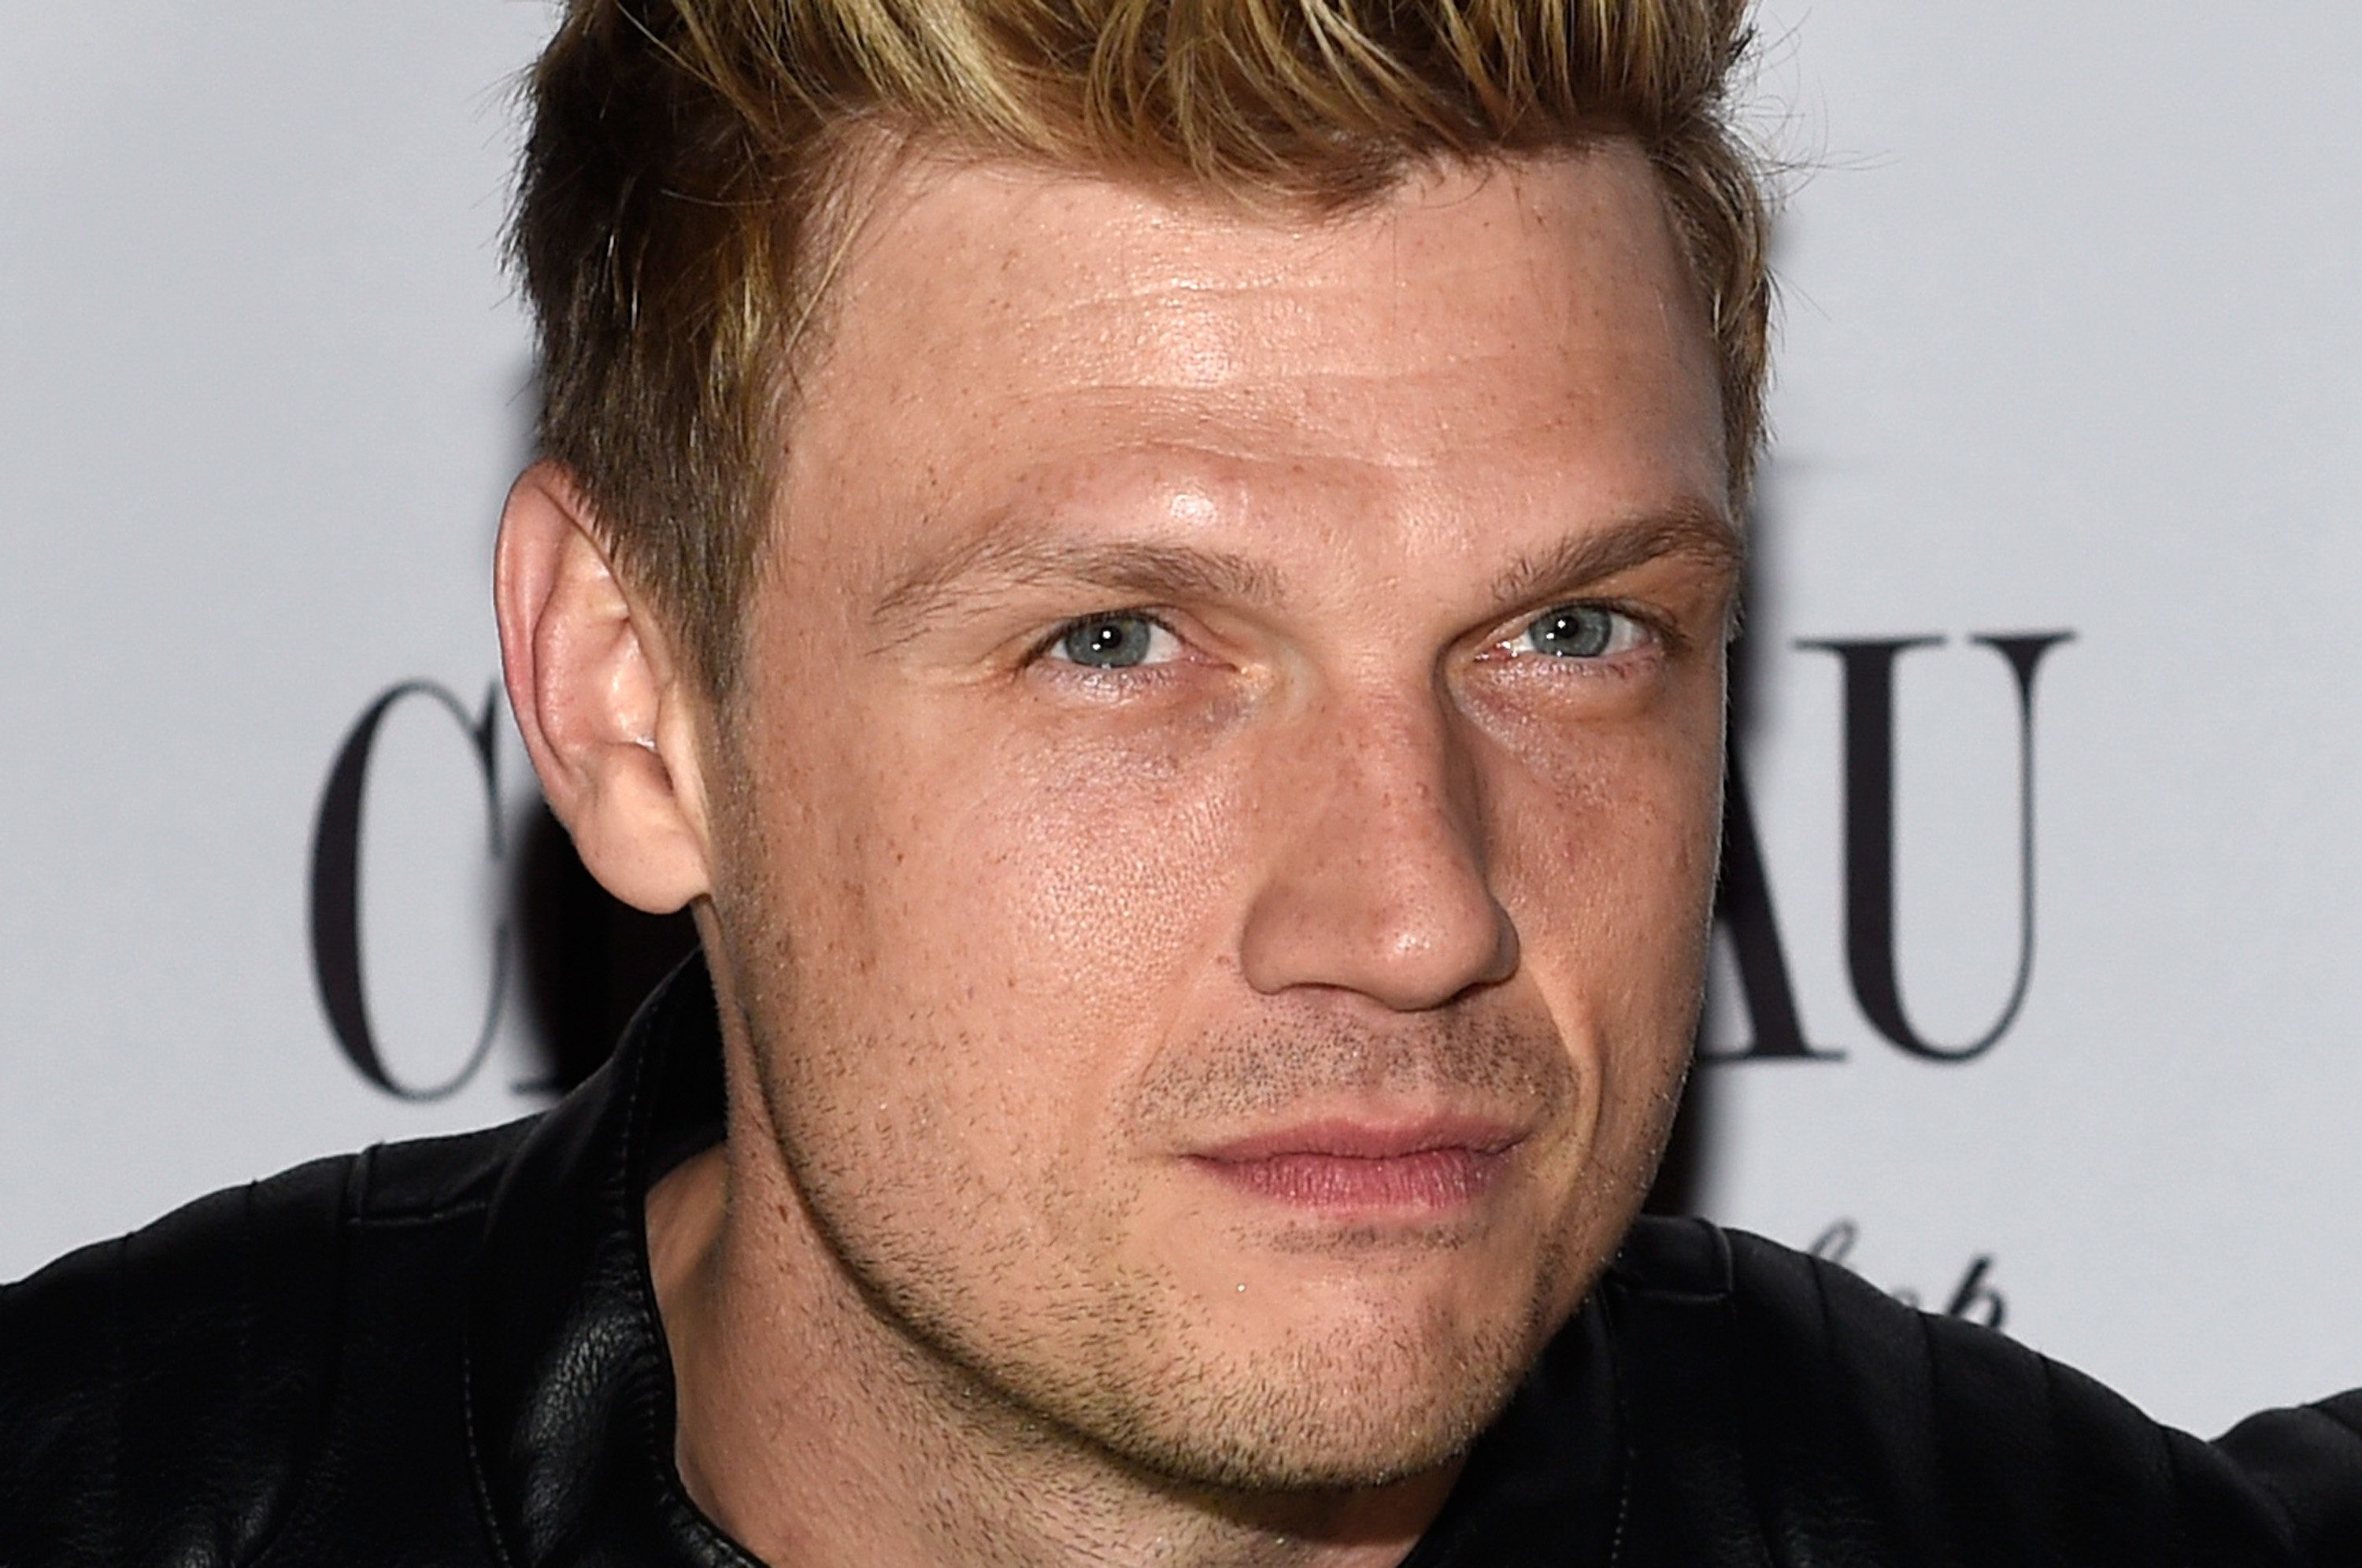 Nick Carter in Las Vegas on March 2, 2017.